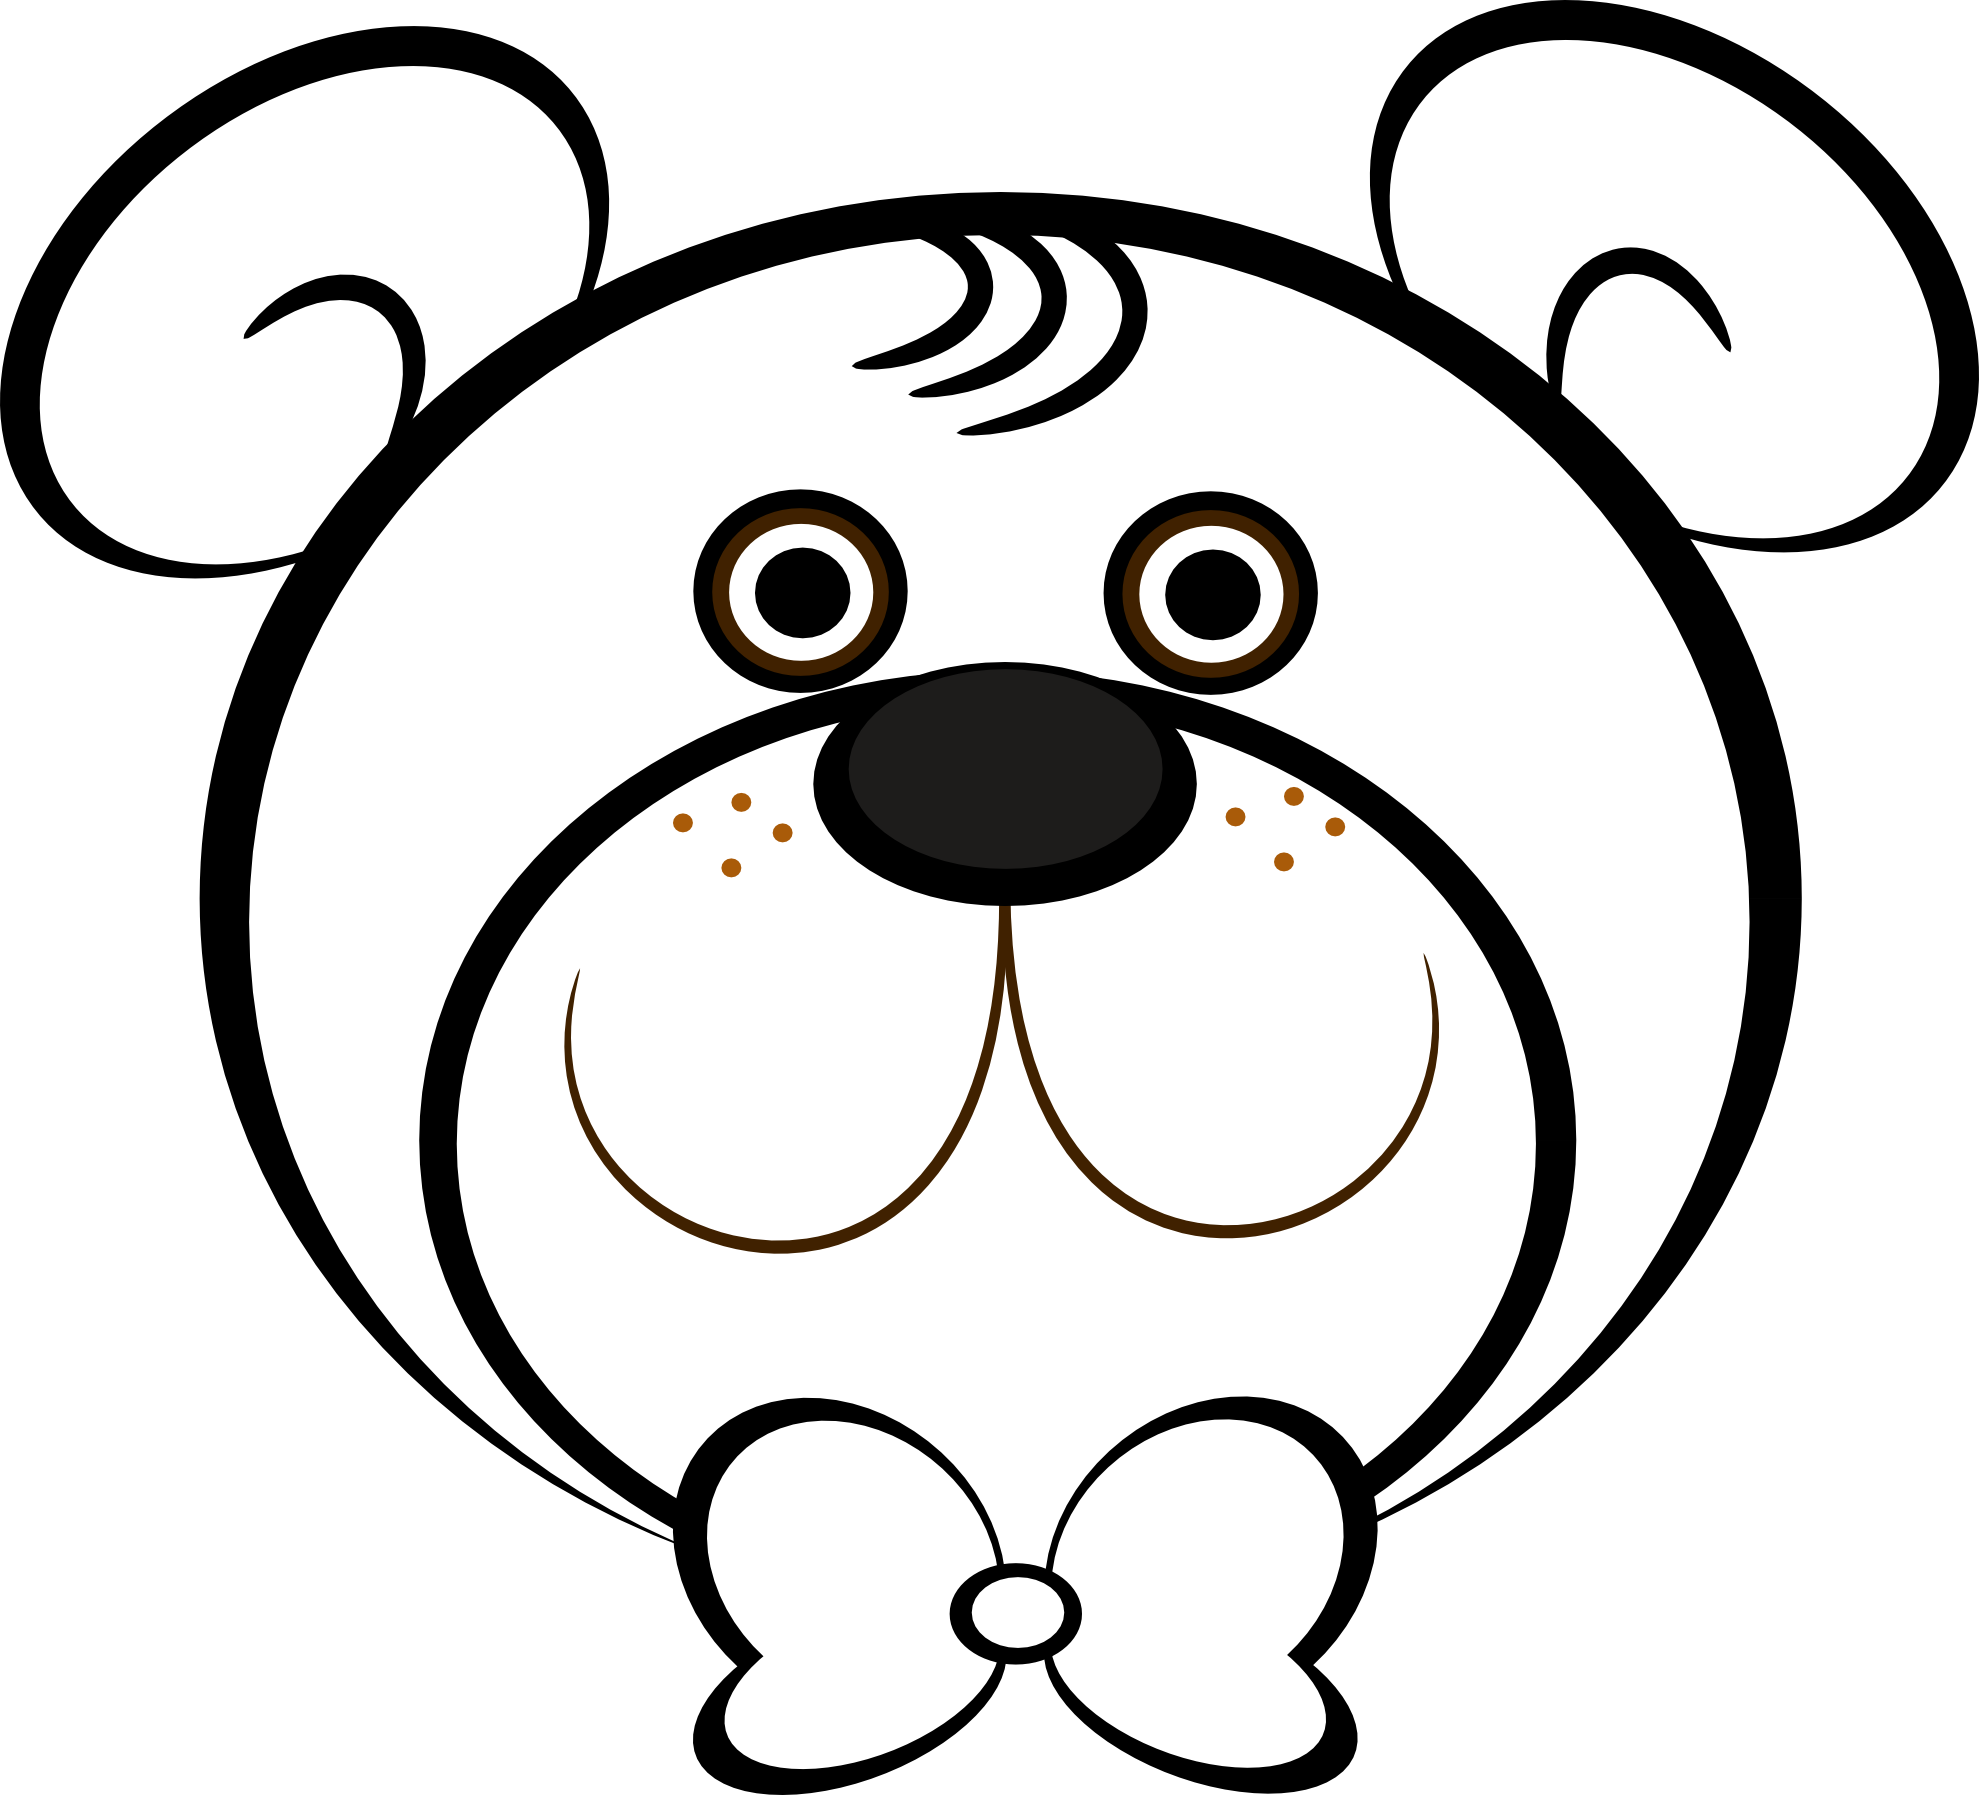 Coloring book clipart black and white clipart royalty free clipartist.net » Clip Art » teddy bear black white line art coloring ... clipart royalty free